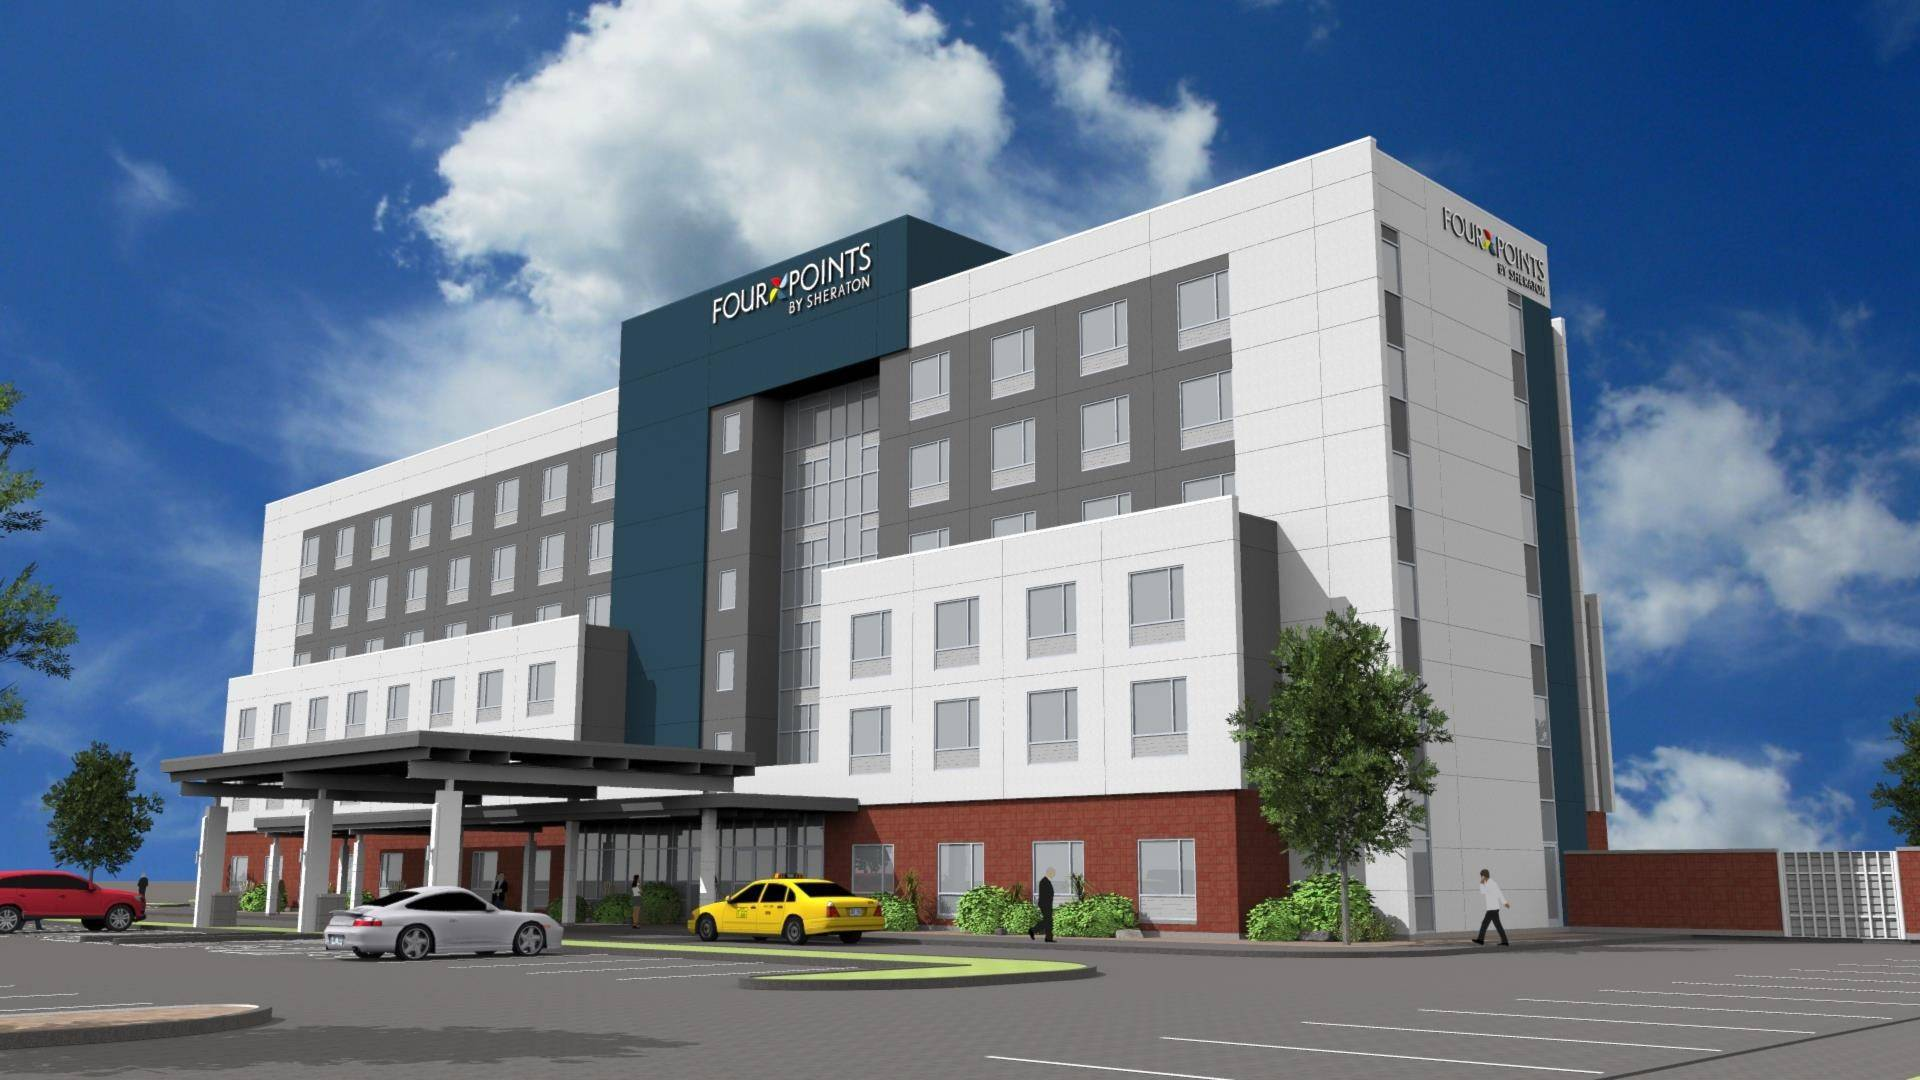 Rendering of the proposed Four Points by Sheraton Hotel, which will have 161 rooms at the Arlington Downs site in Arlington Heights.